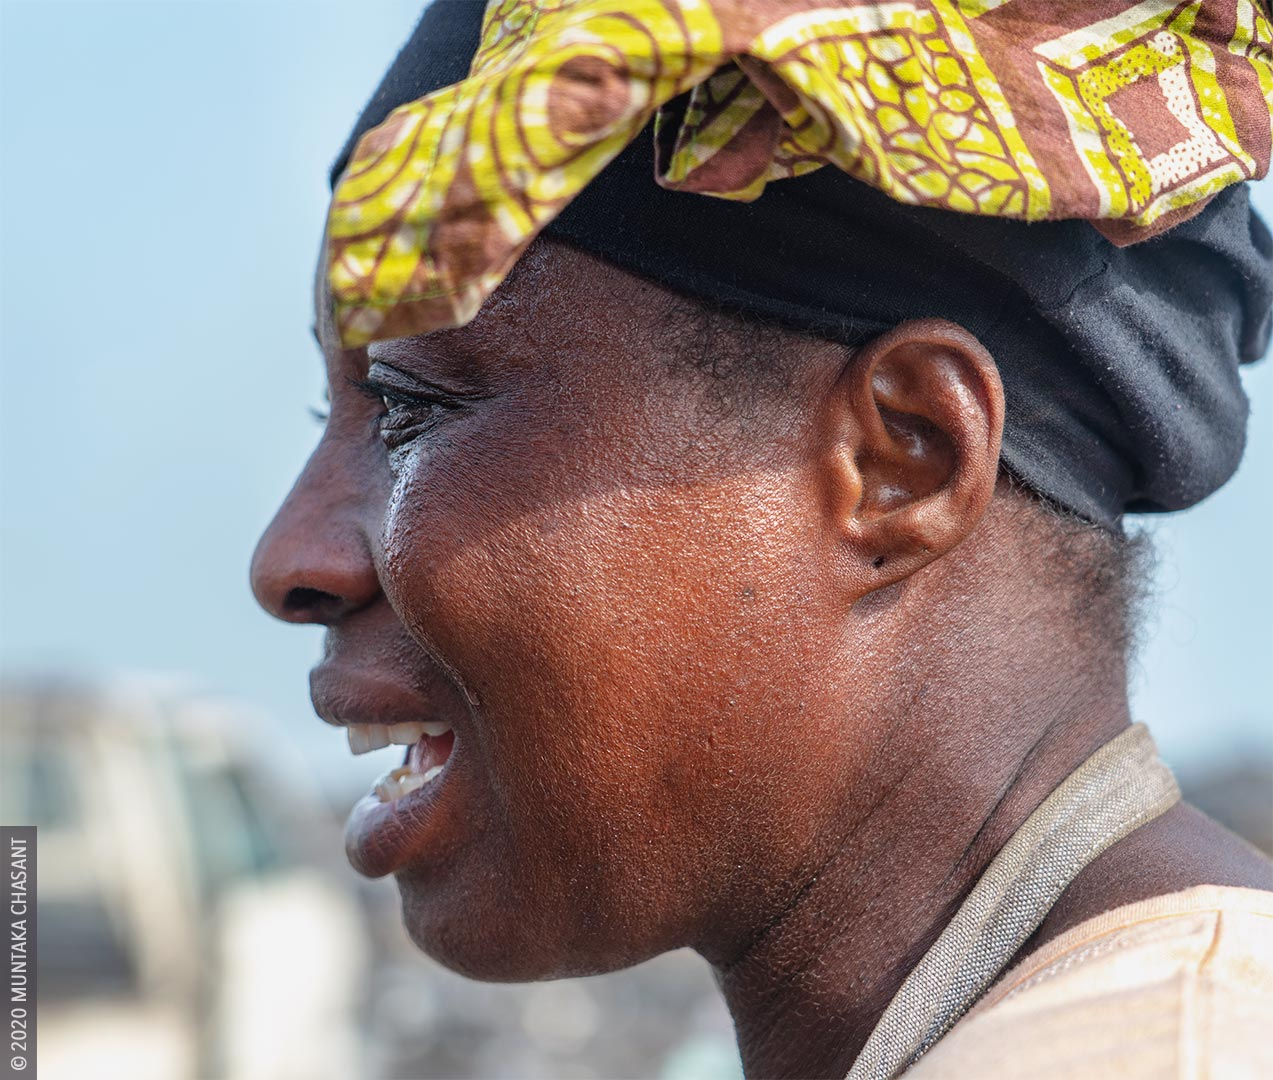 Urban Poverty: Poor Woman Crying Photo in Accra, Ghana. © 2020 Muntaka Chasant